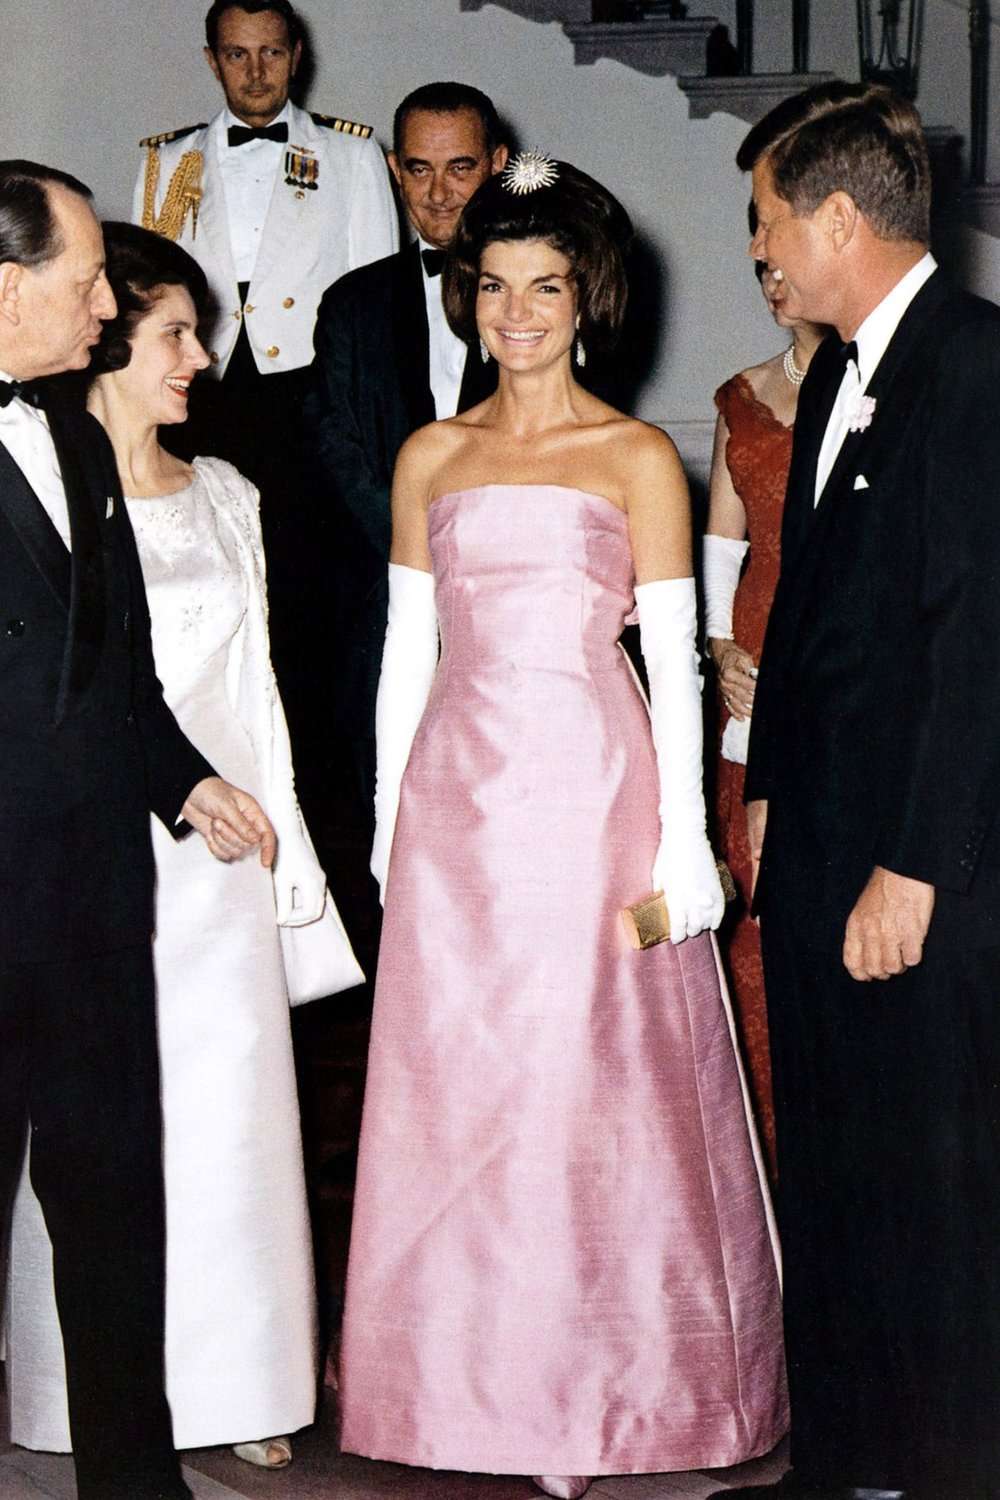 Jacqueline Lee Kennedy Onassis was an American book editor and socialite who was First Lady of the United States during the presidency of her husband, John F. Kennedy, from January 1961 until his assassination in November 1963.